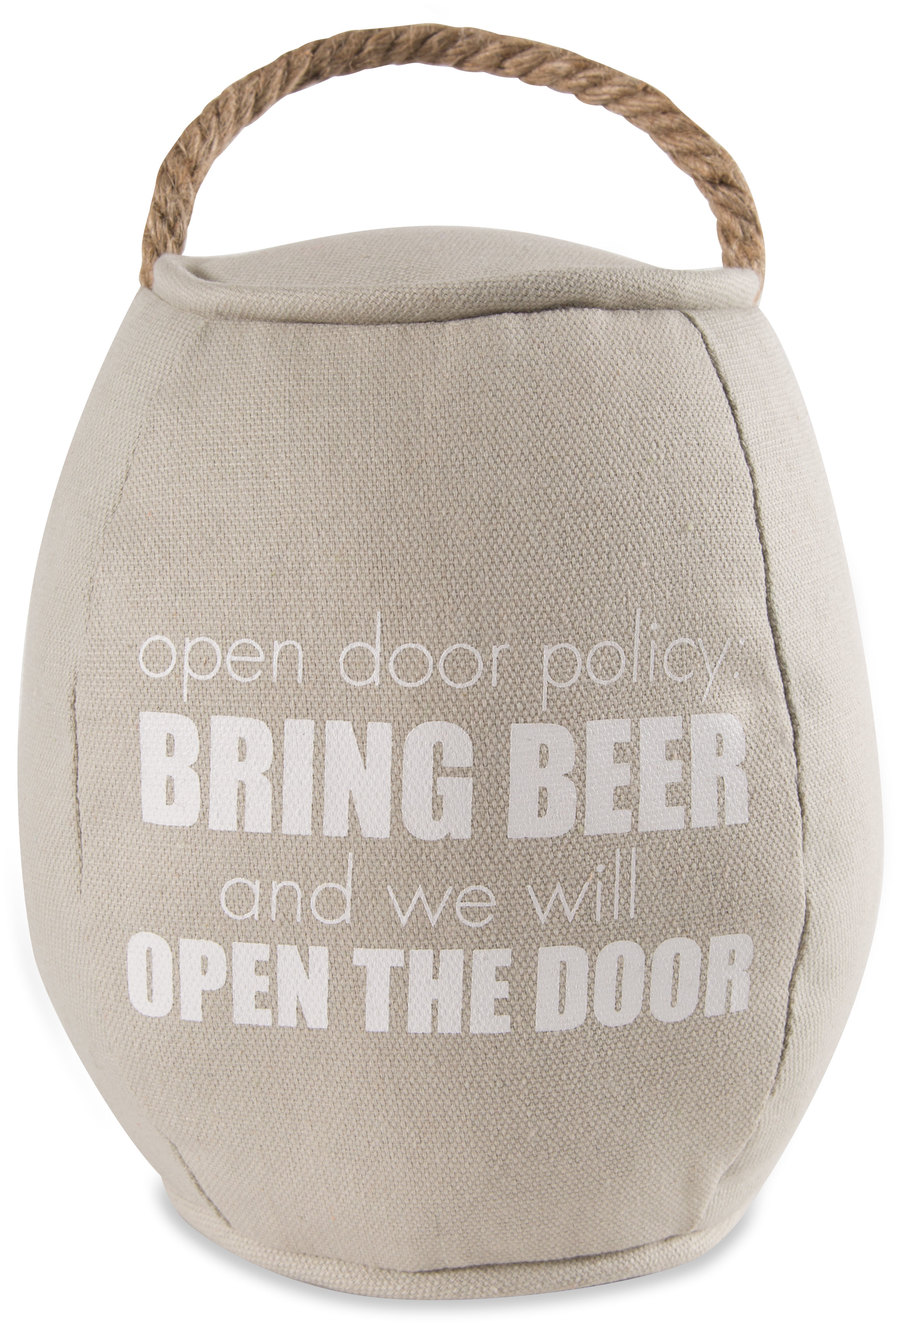 "Bring Beer by Man Crafted - Bring Beer - 8"" Barrel Door Stopper"